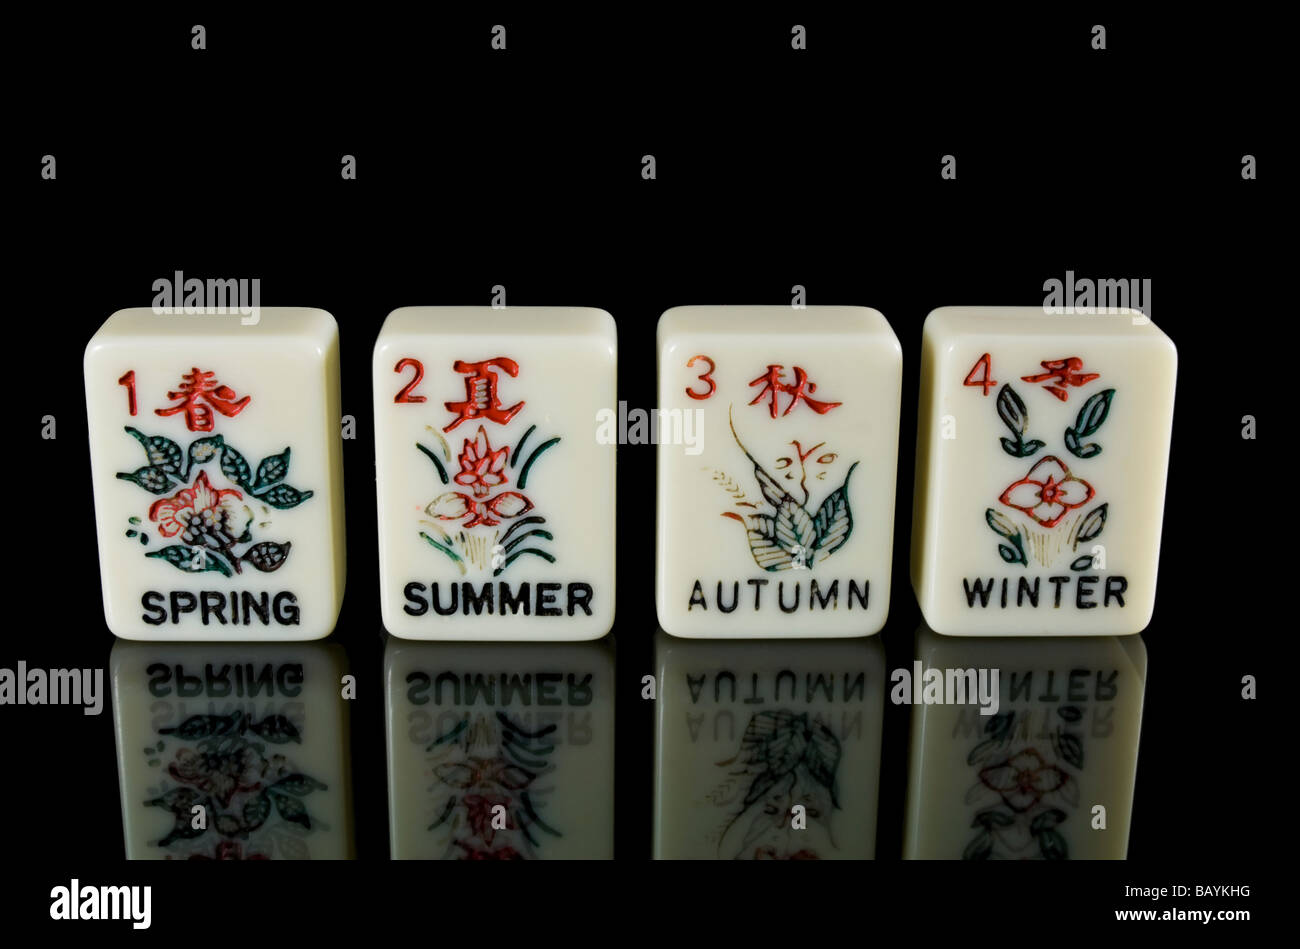 http://c8.alamy.com/comp/BAYKHG/hand-painted-seasons-tiles-in-the-ancient-chinese-game-of-mahjong-BAYKHG.jpg